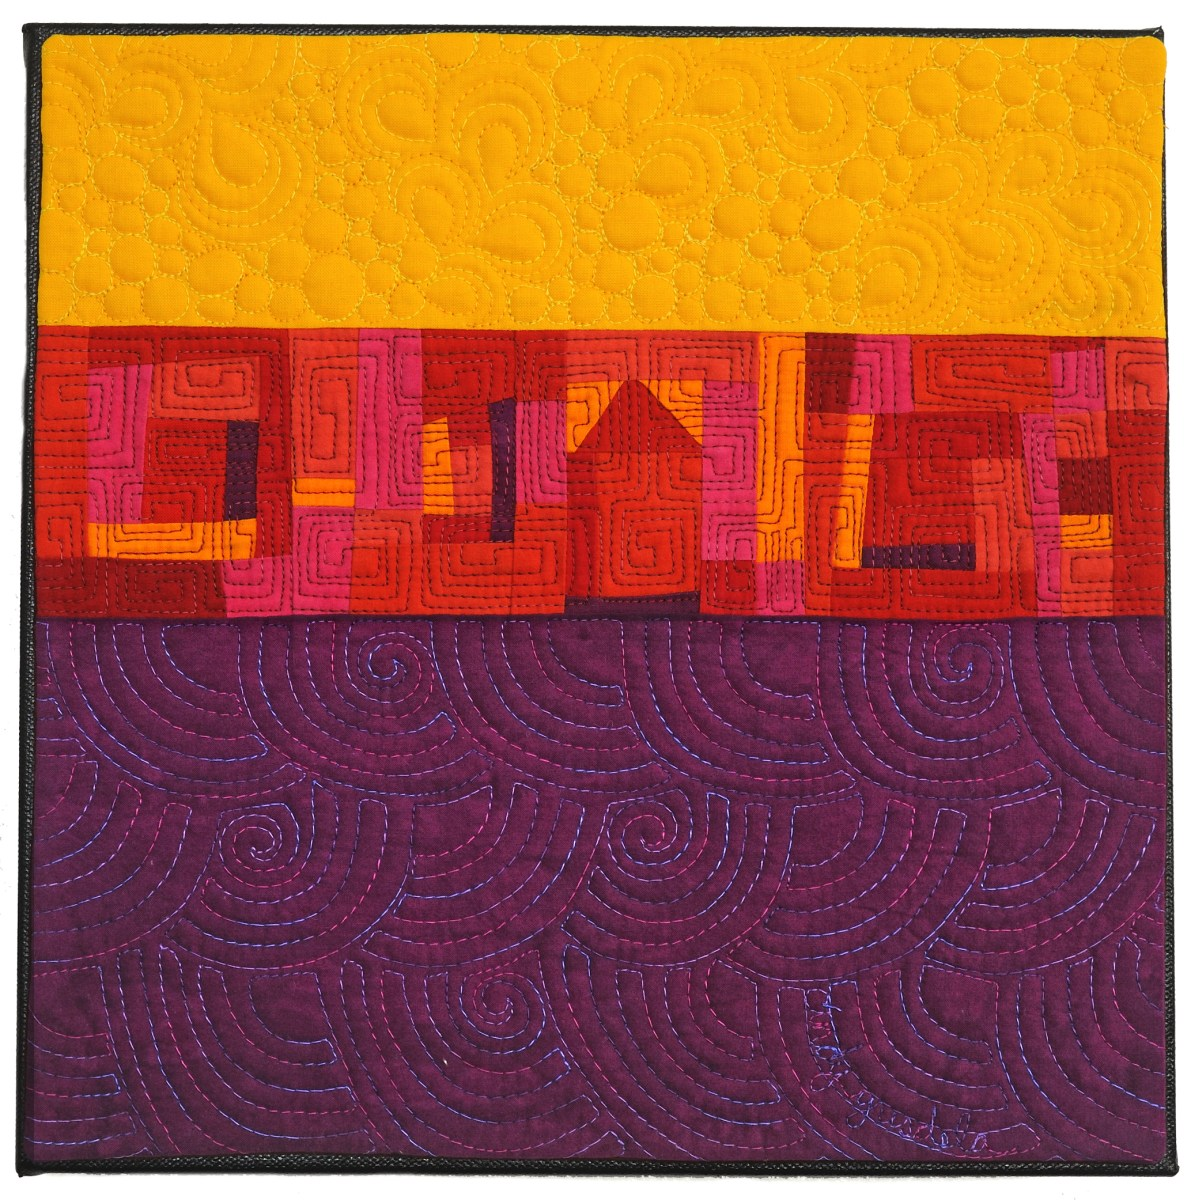 Sunset Boulevard art quilt in purple and gold - Cindy Grisdela